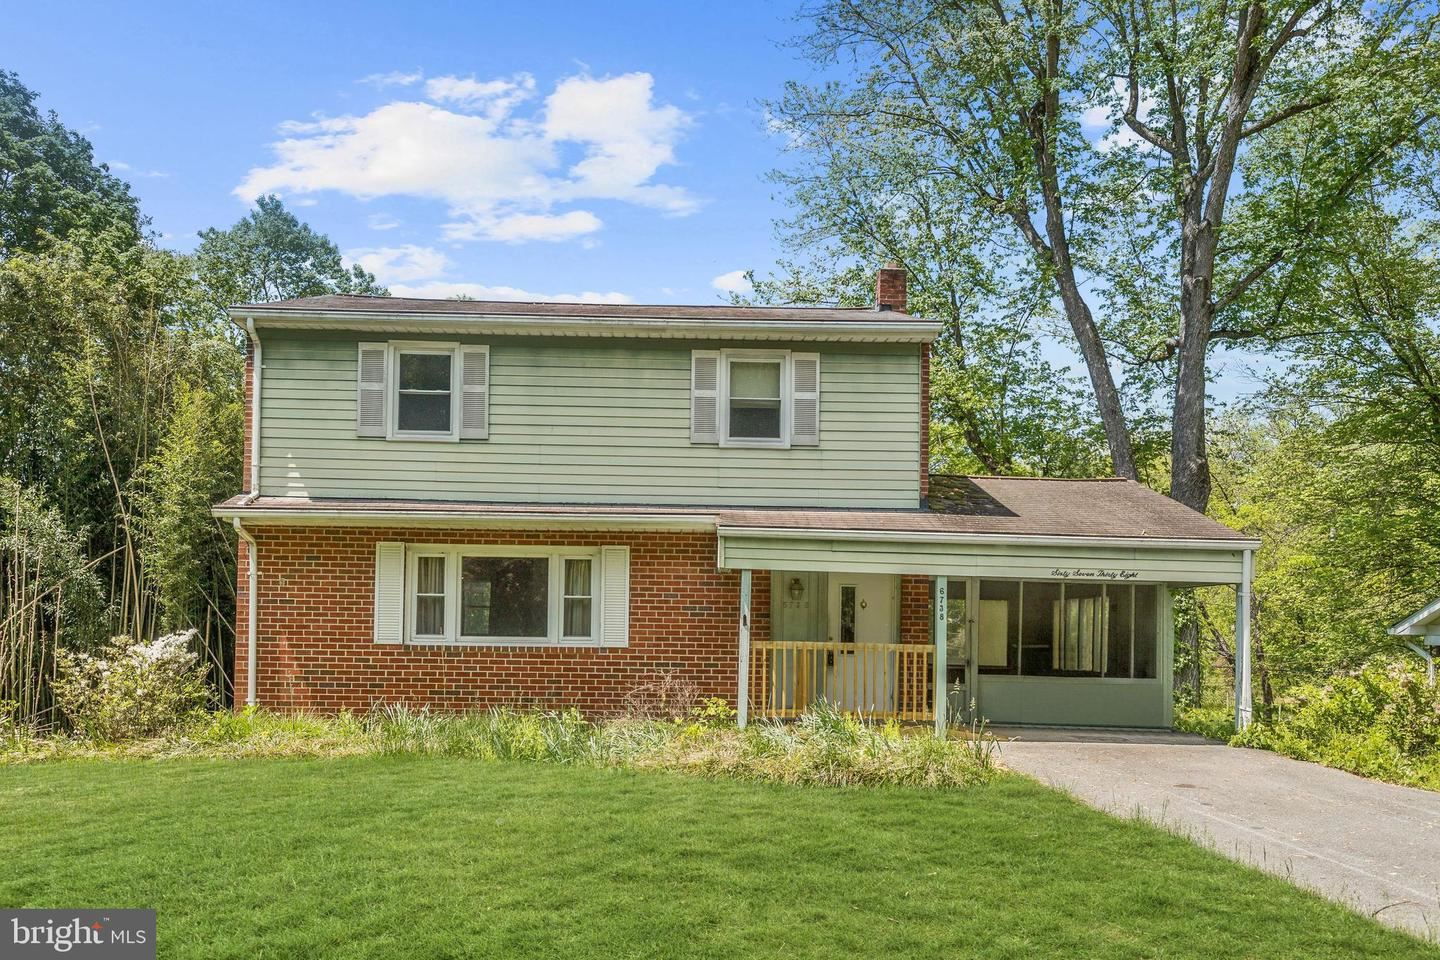 6738 ALLVIEW DR, Columbia, MD 21046 - MLS#: MDHW294602